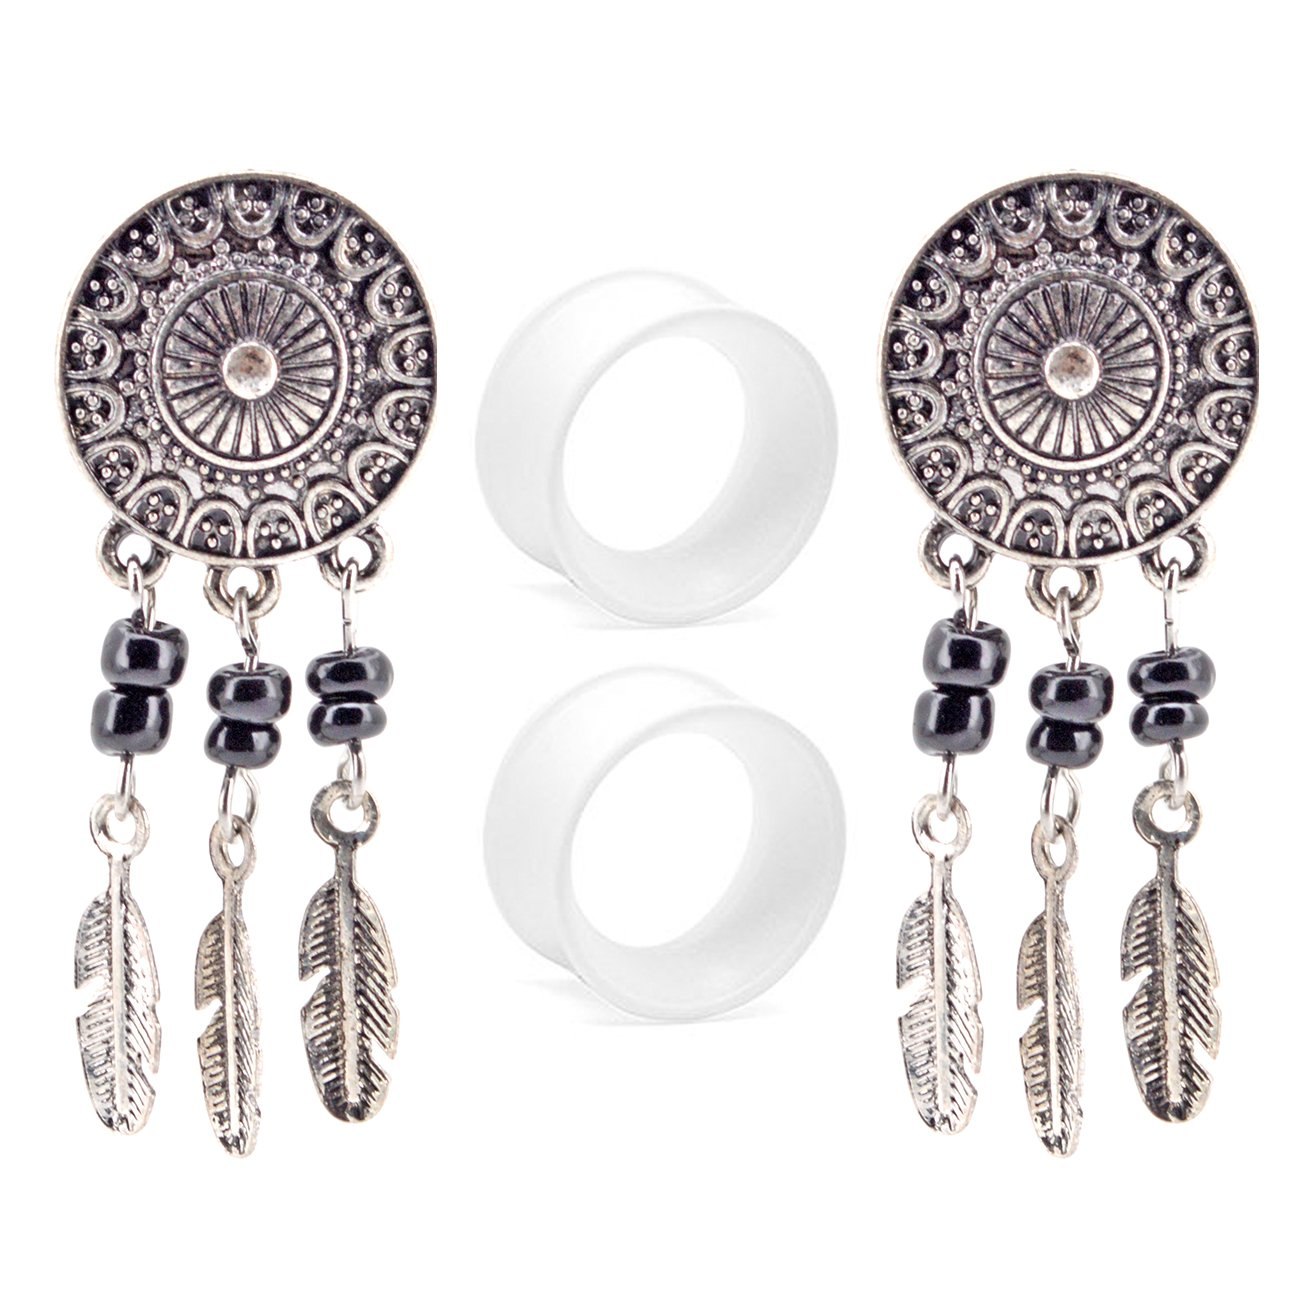 """OUFER Body Jewelry Stainless Steel Dream Catcher Dangle Double Flared Plug with Clear Silicone Ear Stretcher Piercing (2G--5/8"""")4piece (1/2''=12.7mm)"""